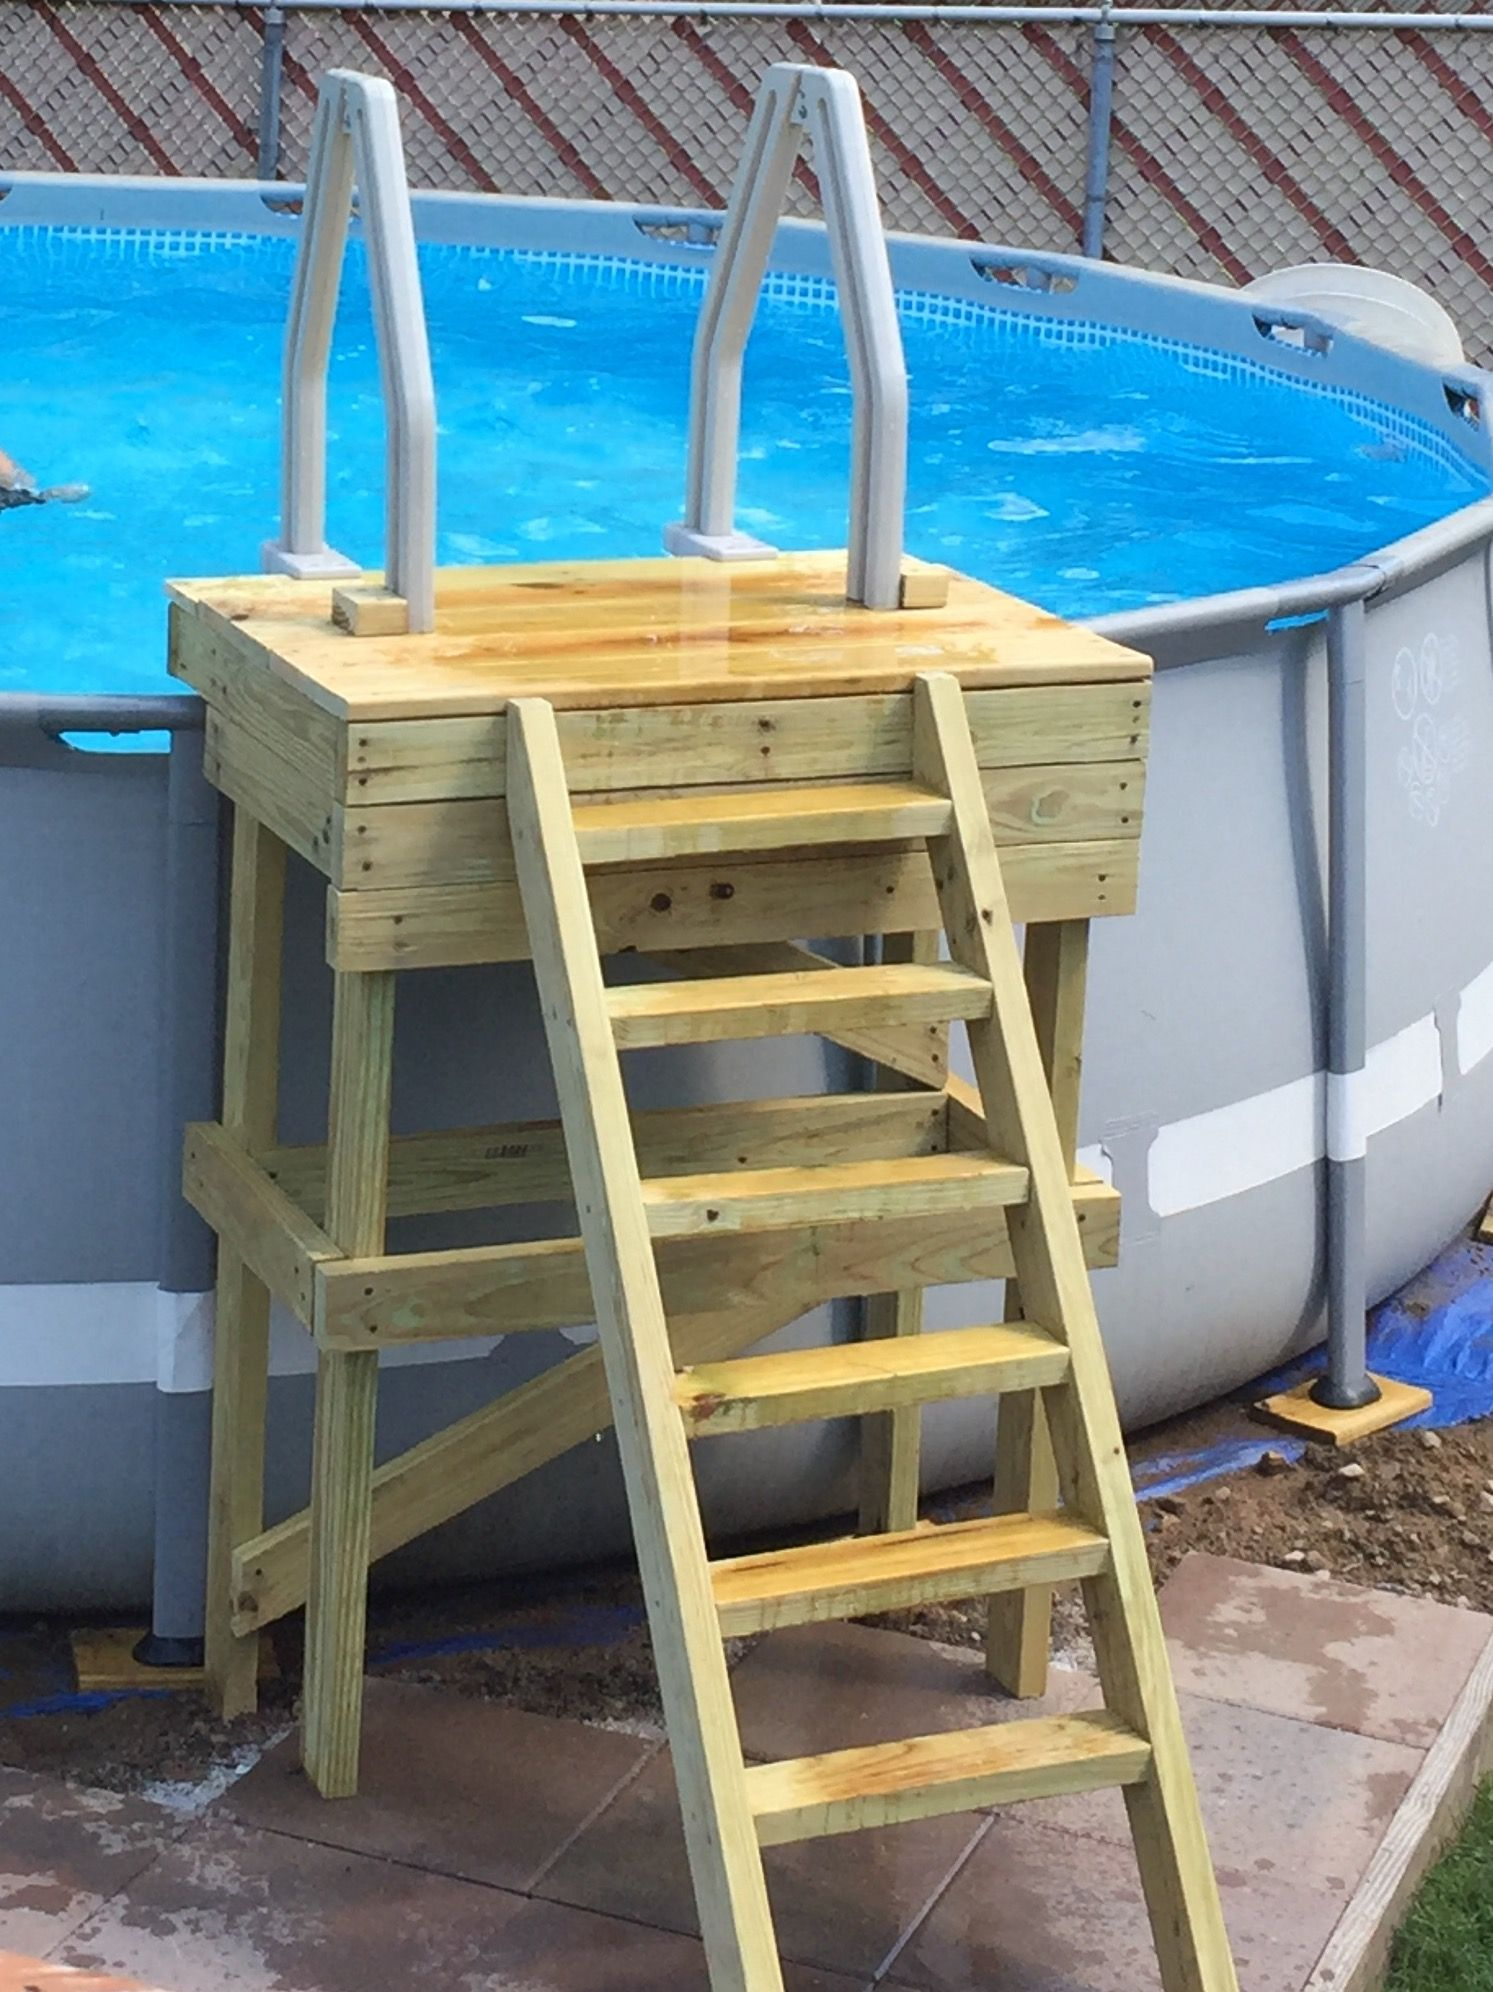 Intex Zwembad 6 Meter Platform With Ladder For Intex Steel Frame Pool 18 X 52